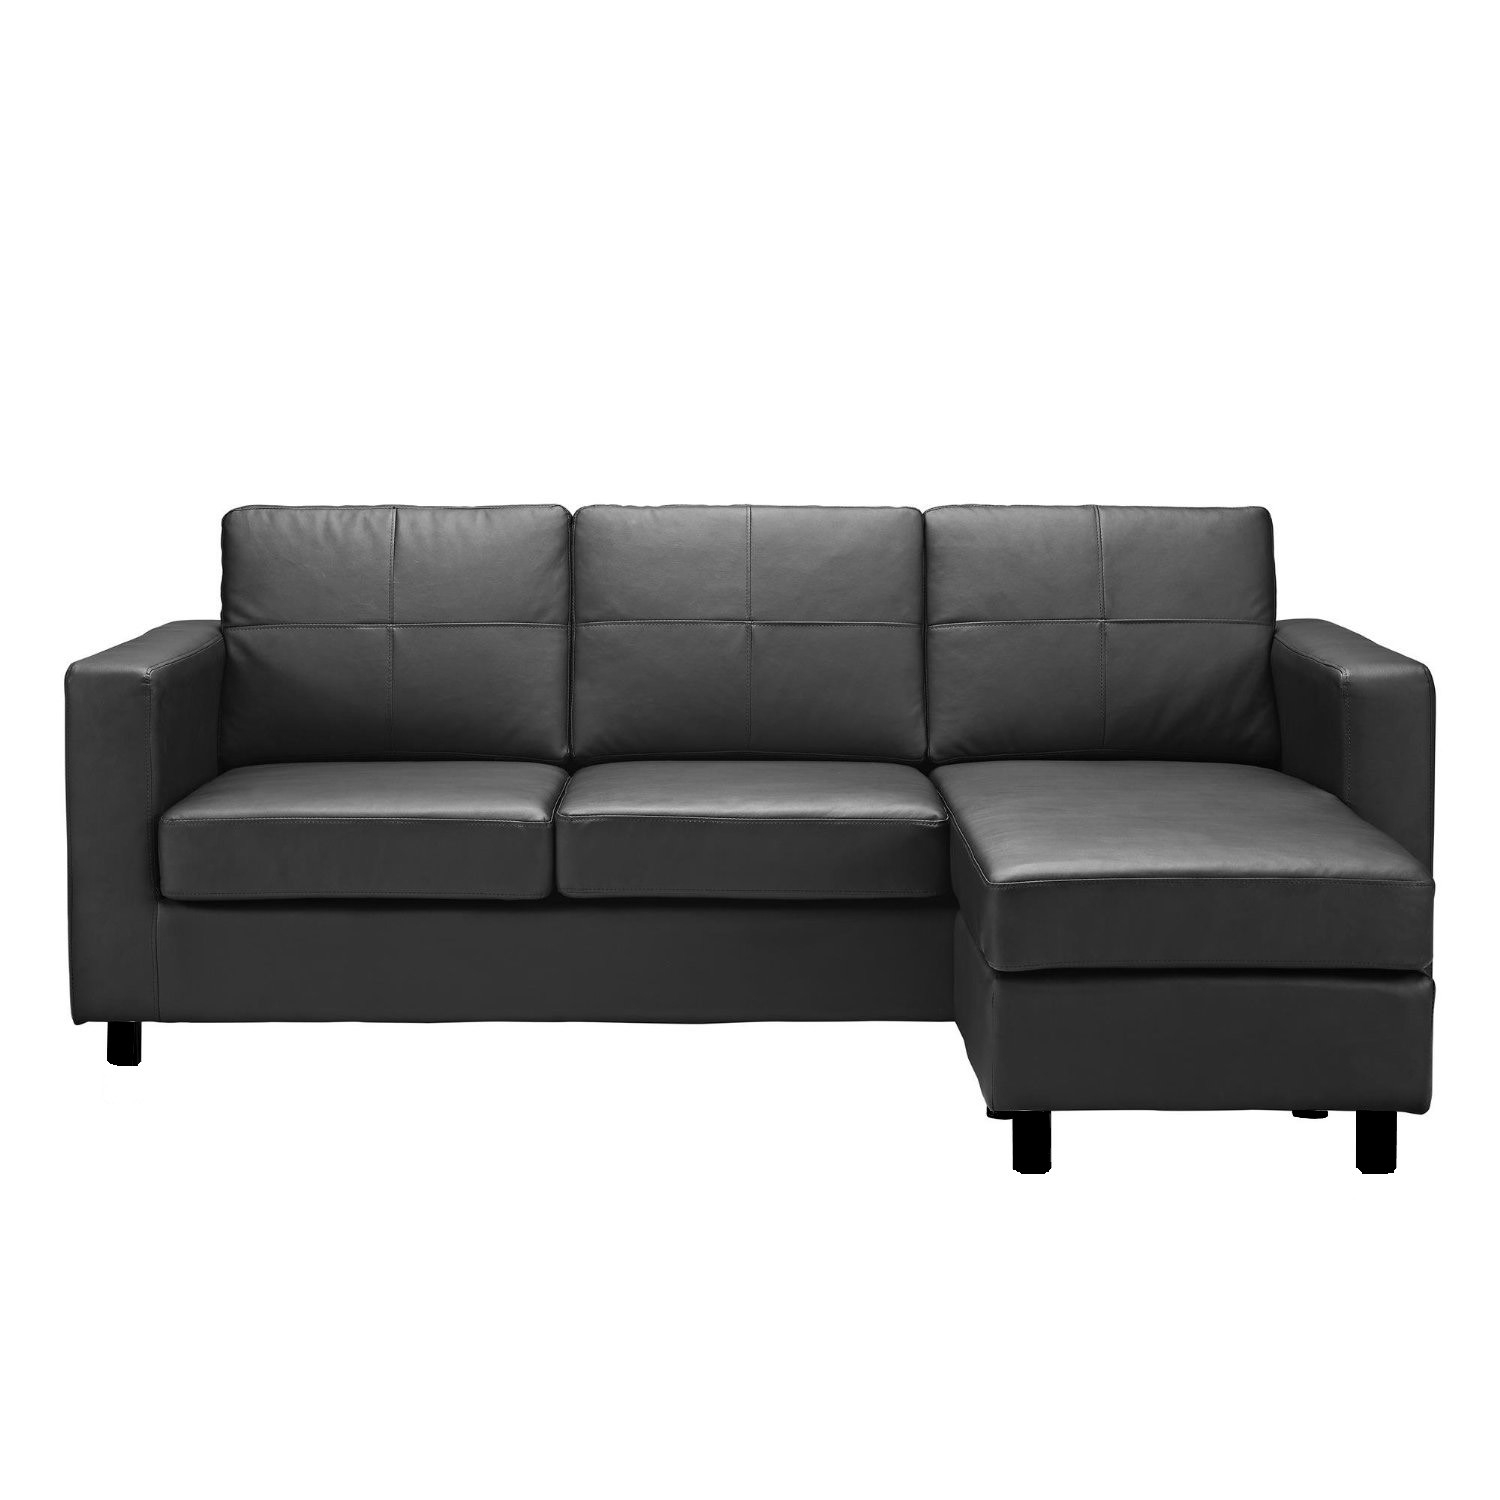 Decor Artificial Classic Corduroy Sectional Sofa For Unique In Compact Sectional Sofas (Image 4 of 15)